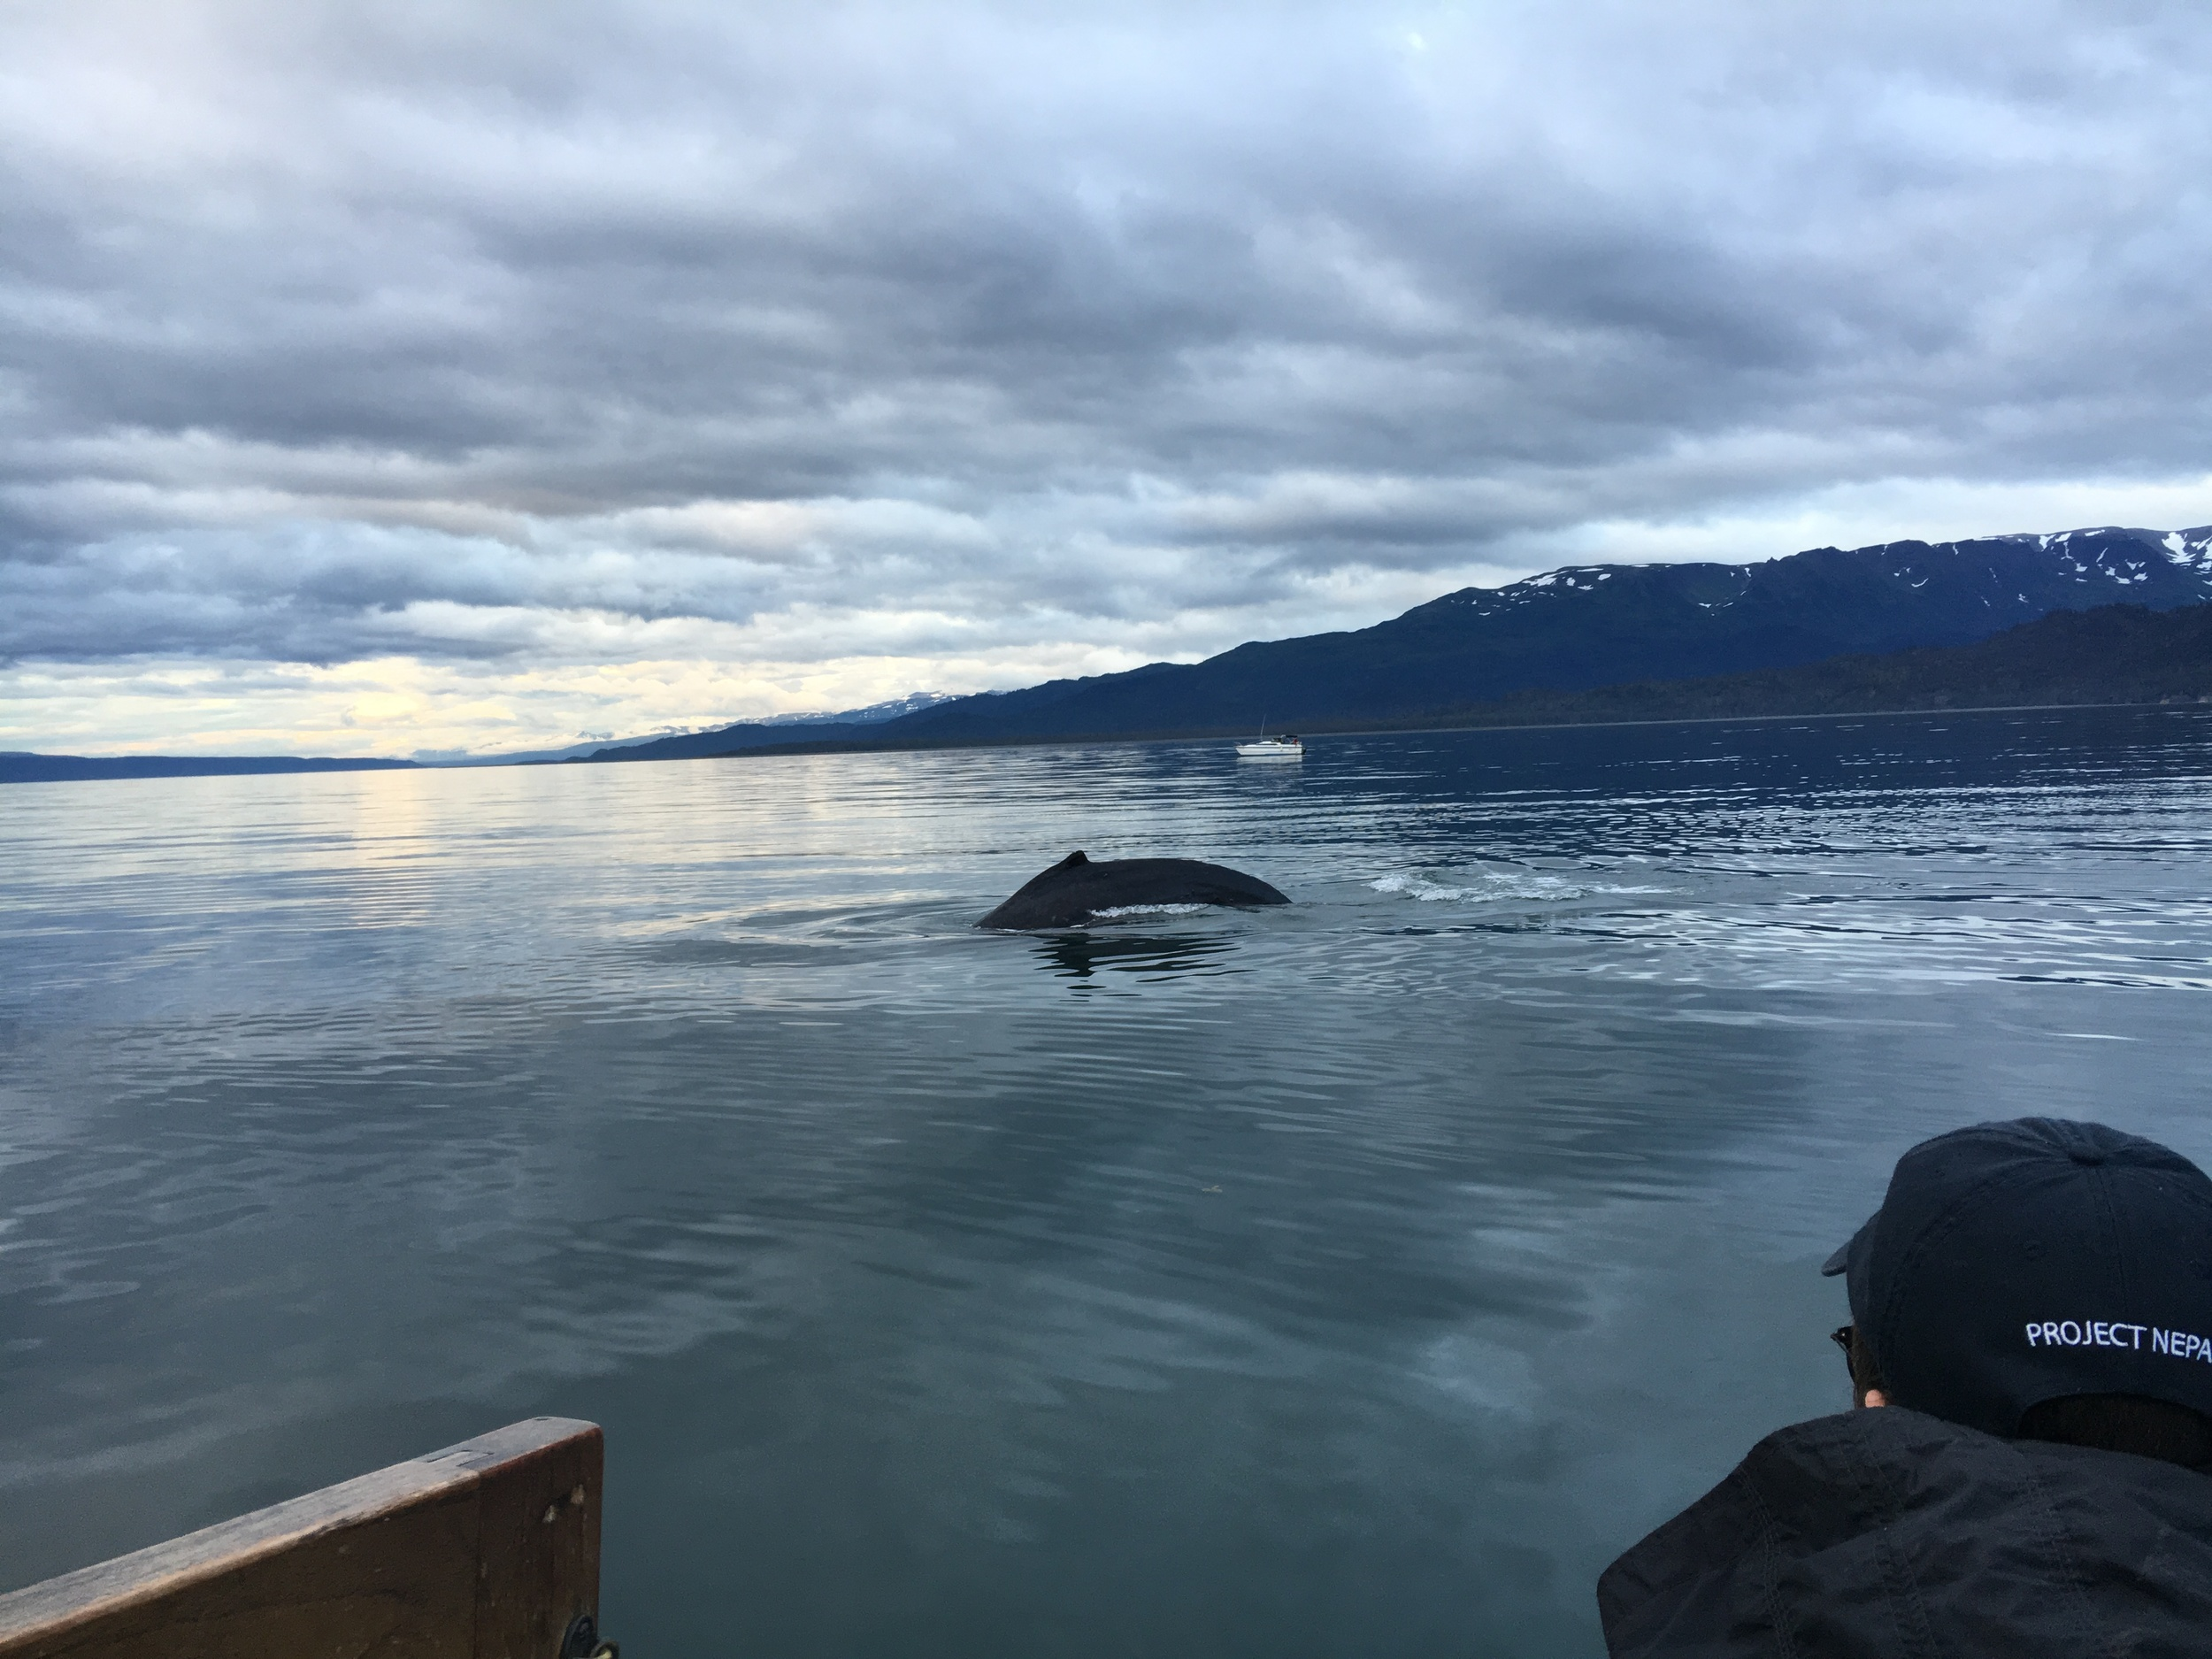 Oh, hey there whale!